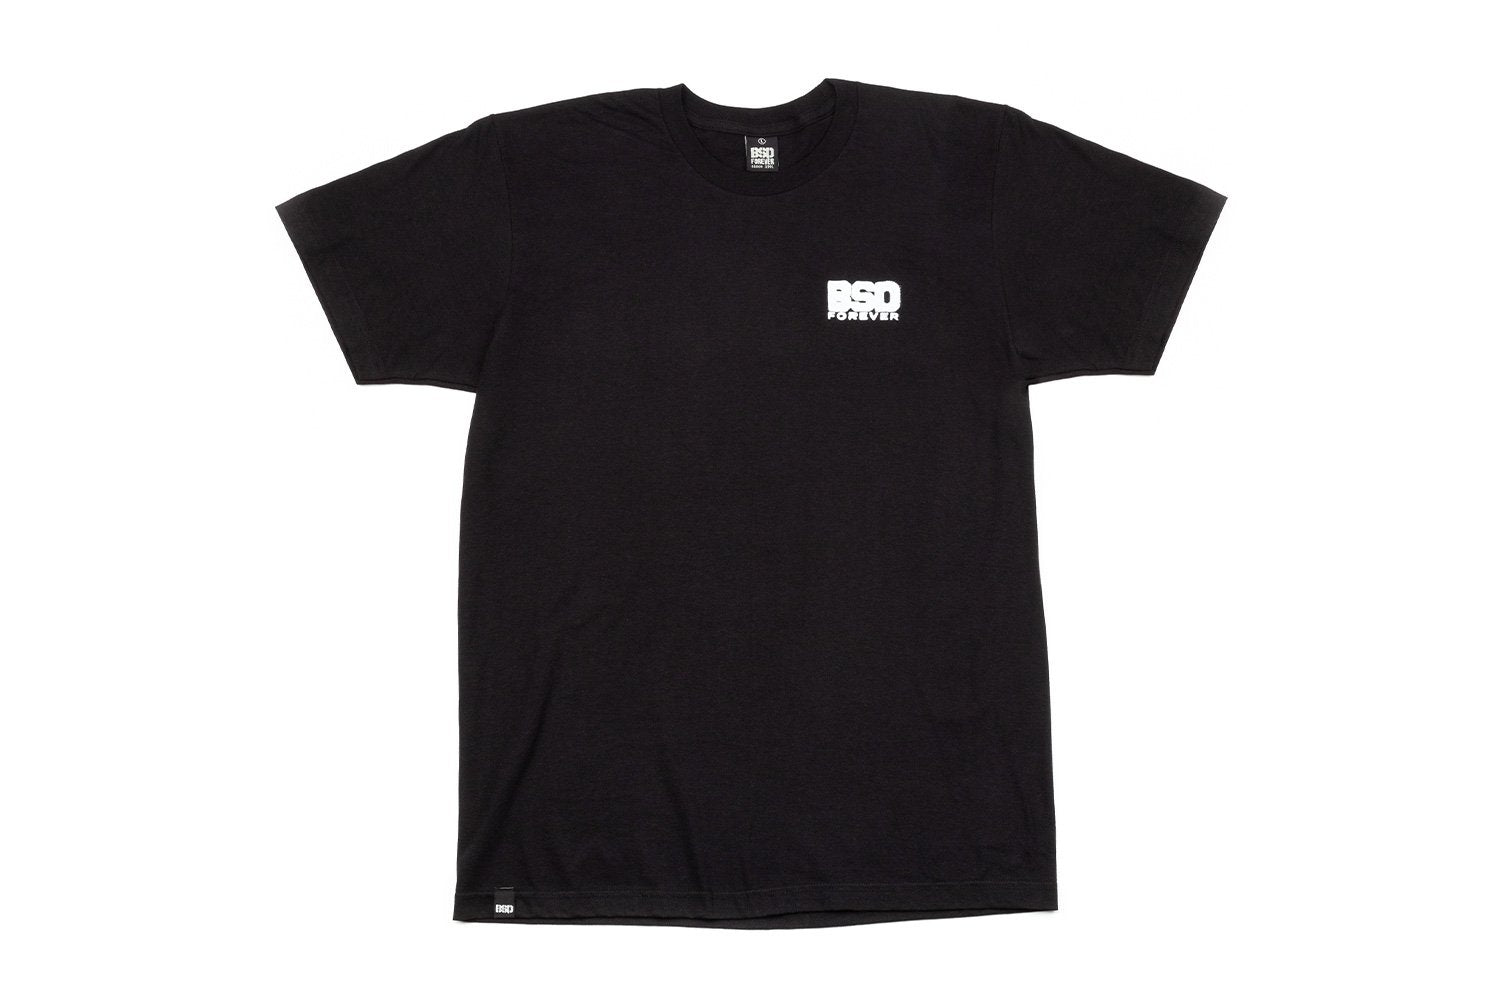 BSD Lost T-Shirt - Black - Large